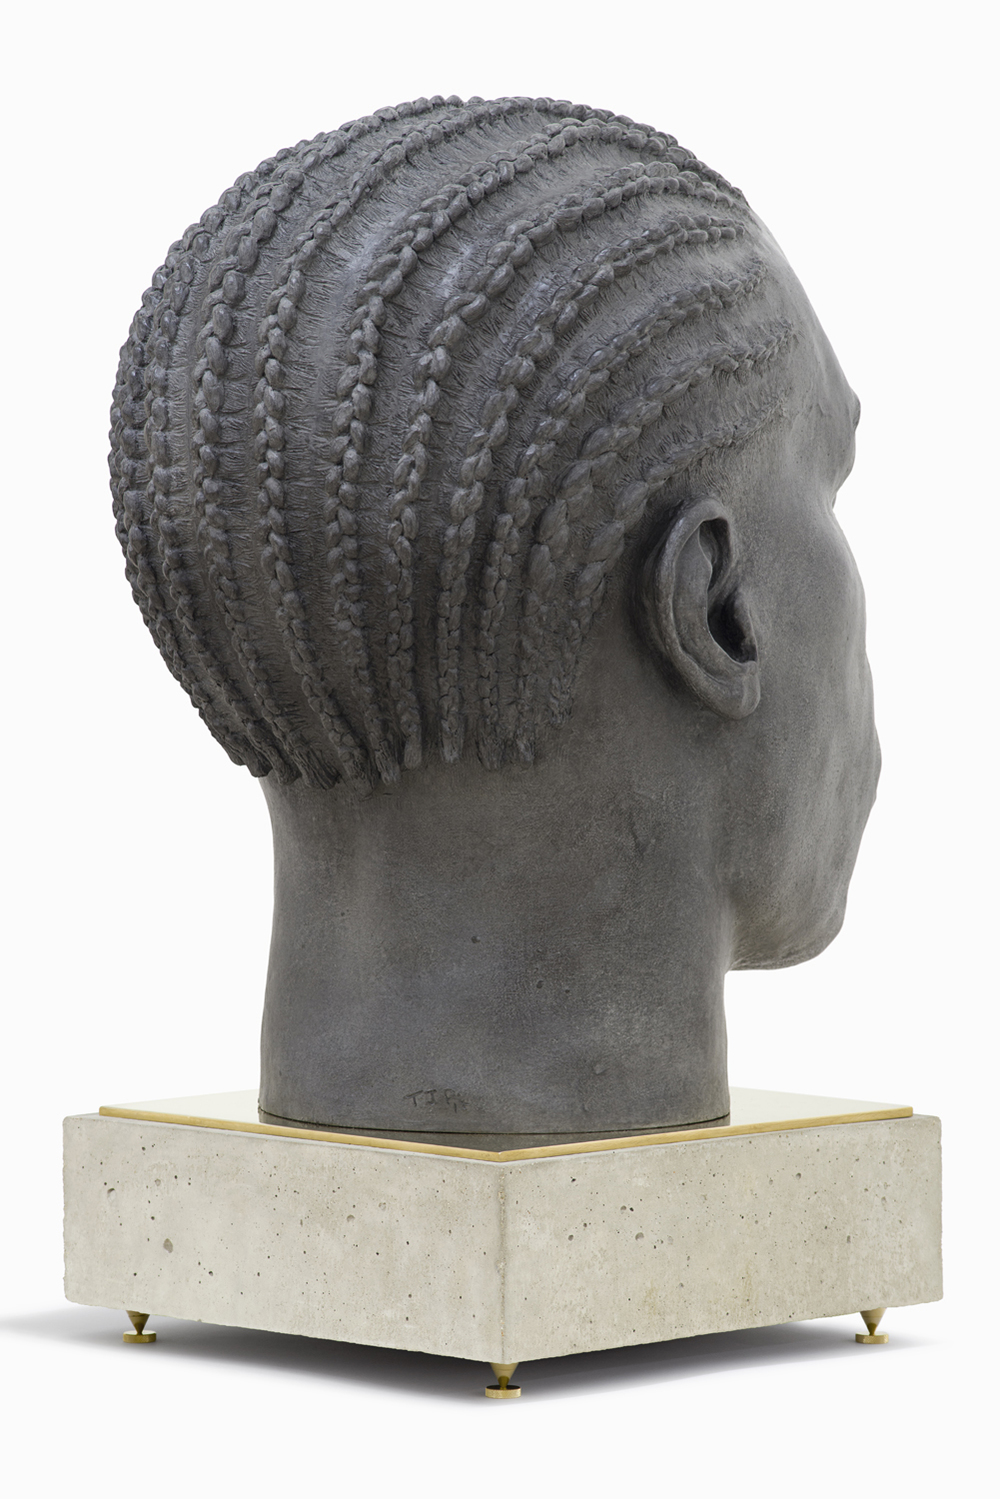 Tom Price, Base - Head (Surface Tension), 2014, bronze, brass and concrete, 77 x 45 x 60 cm [65 x 45 x 60 cm head, 12 x 40 x 40 cm base] [225].jpg